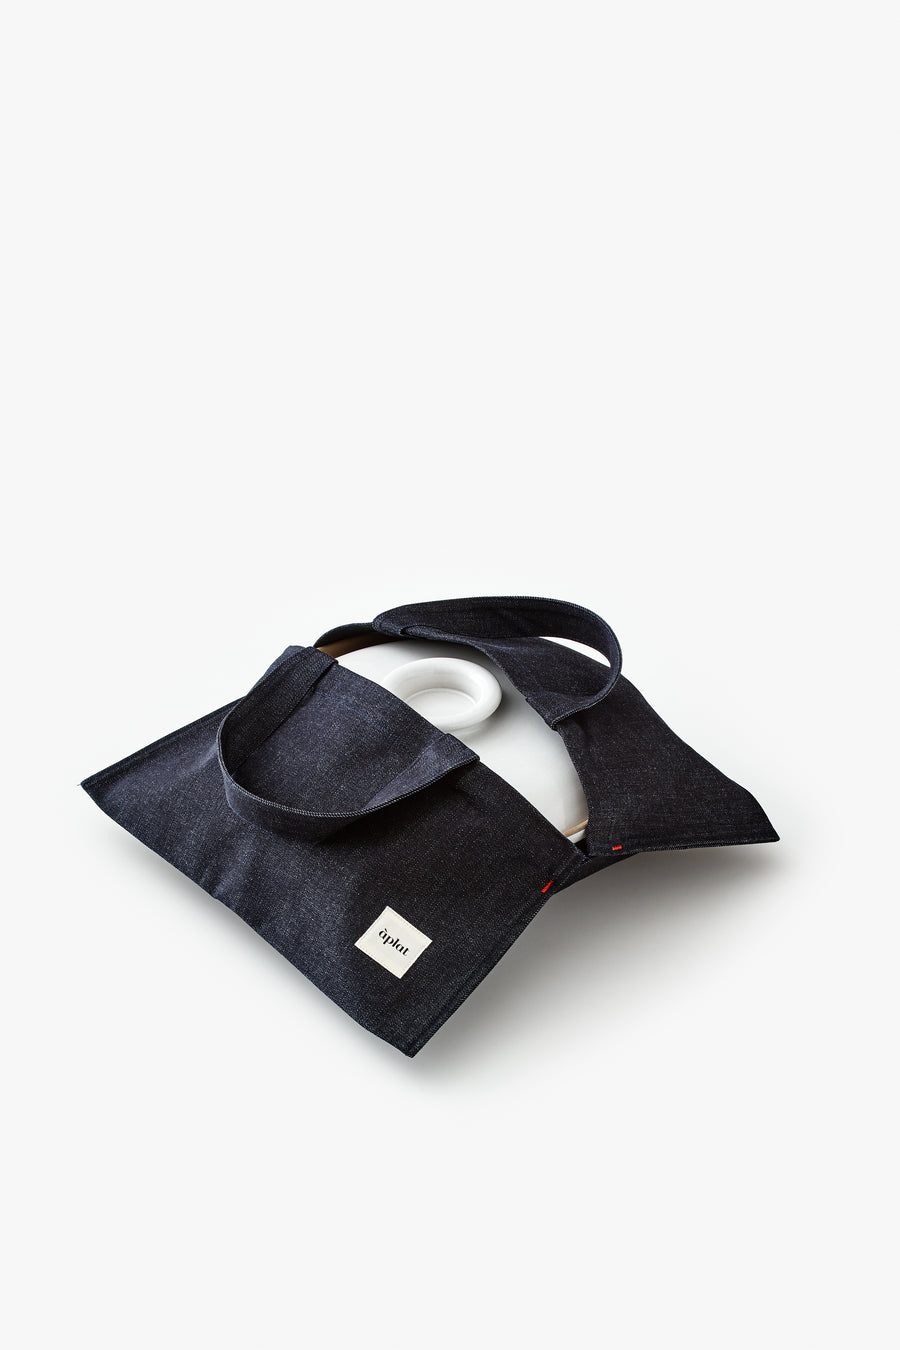 Plat Culinary Tote | Denim